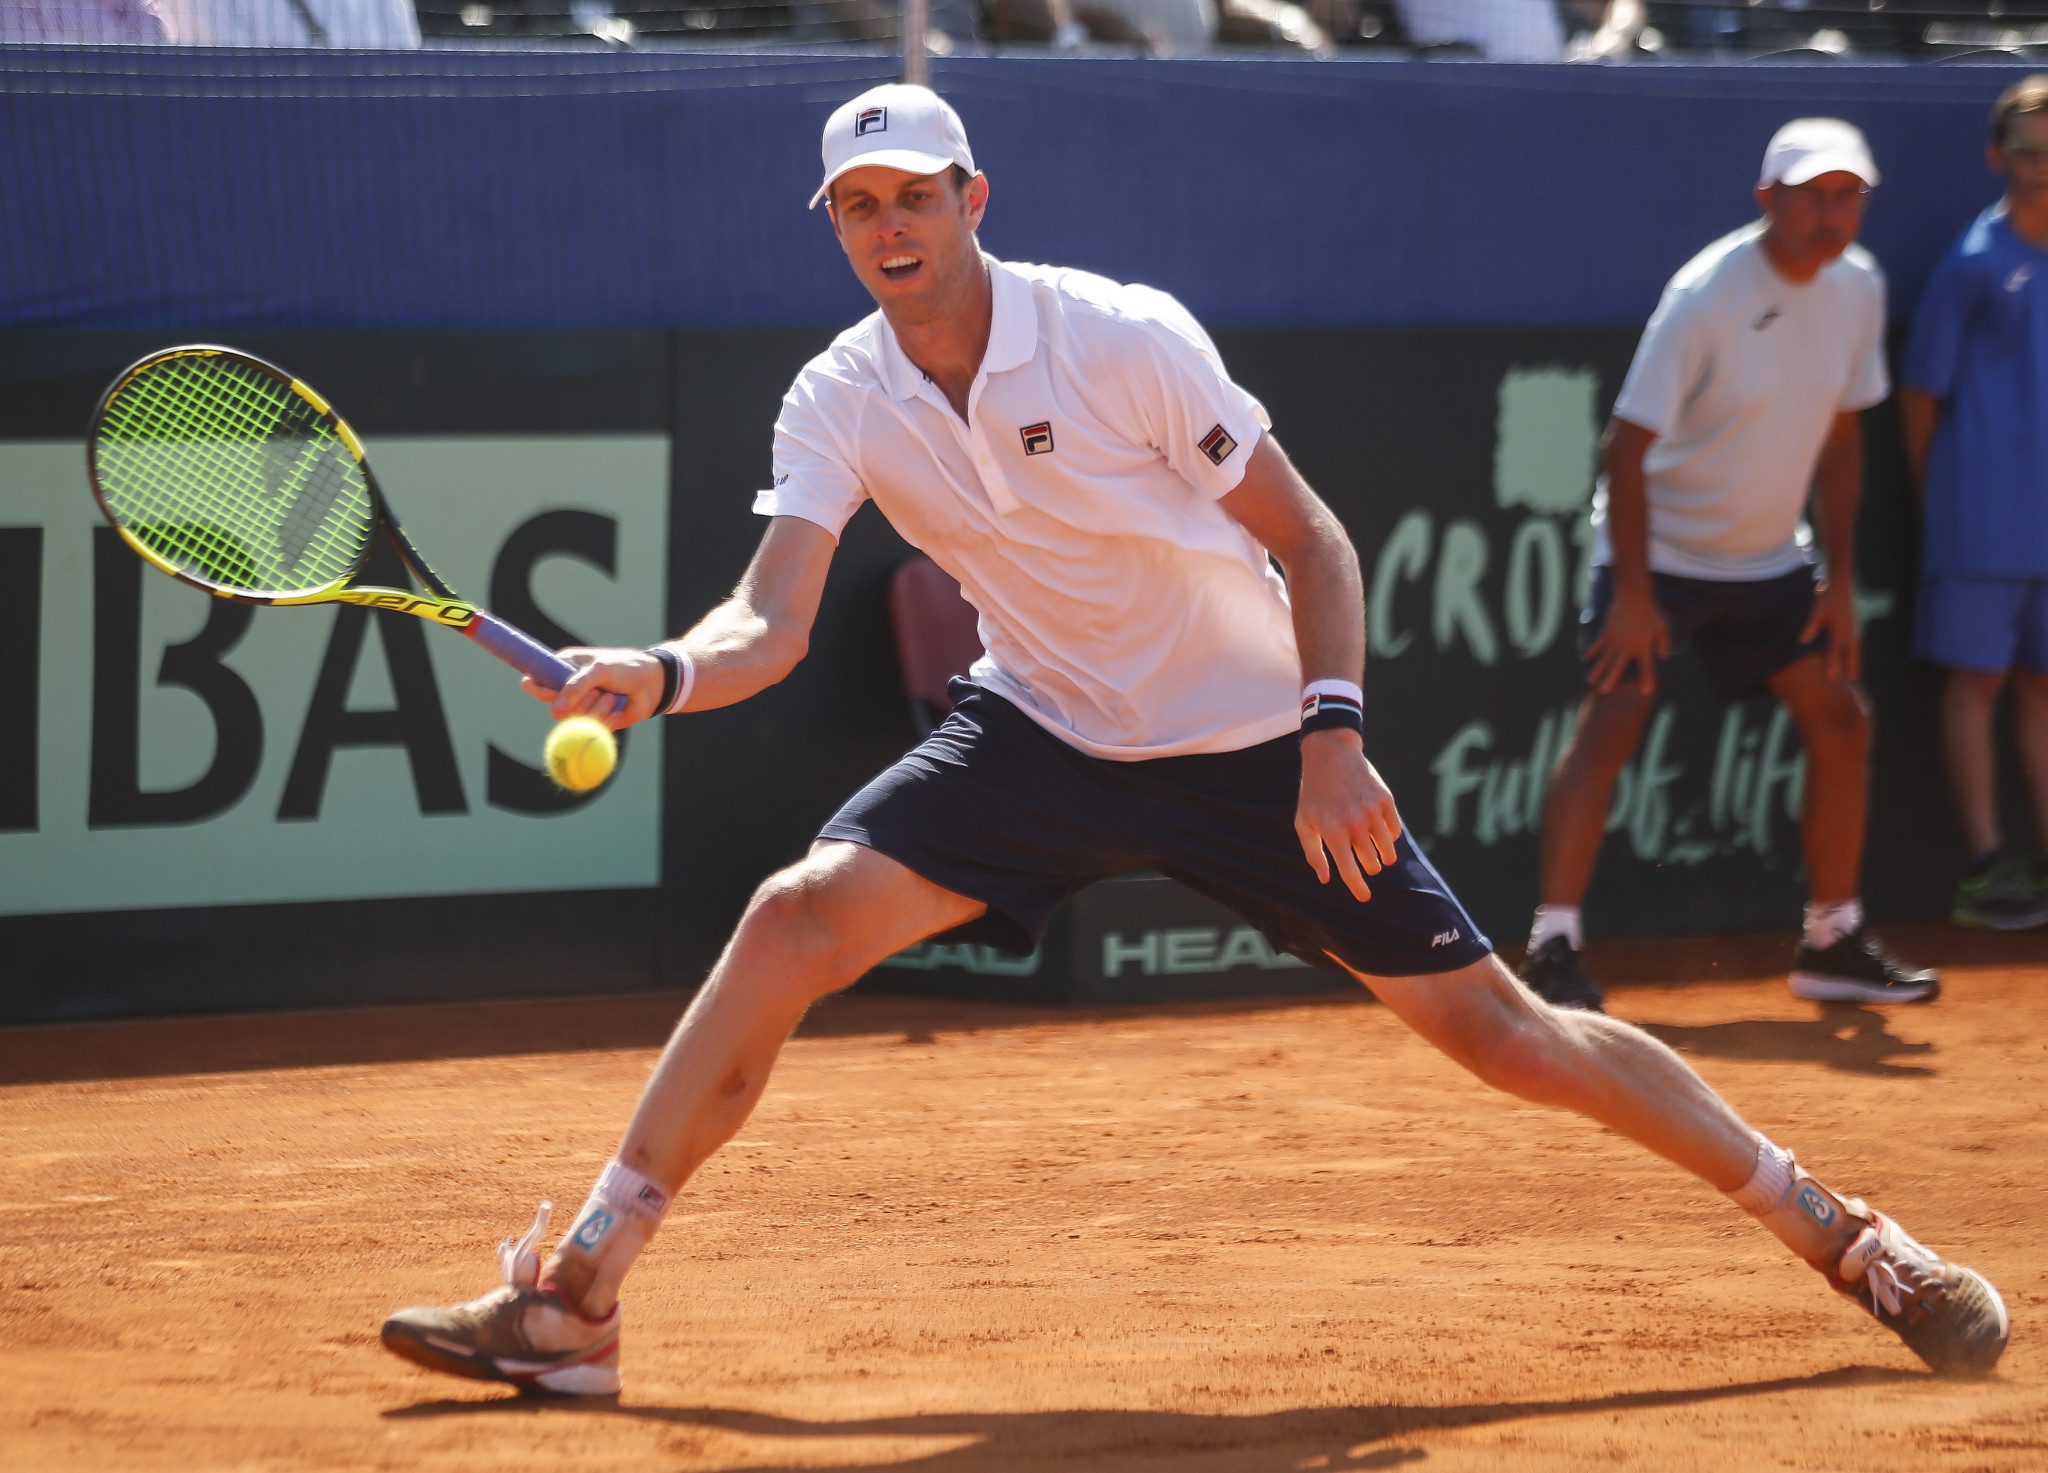 Sam Querrey sent the semi-final into a decider after beating Marin Cilic in the opening singles rubber today ©Getty Images